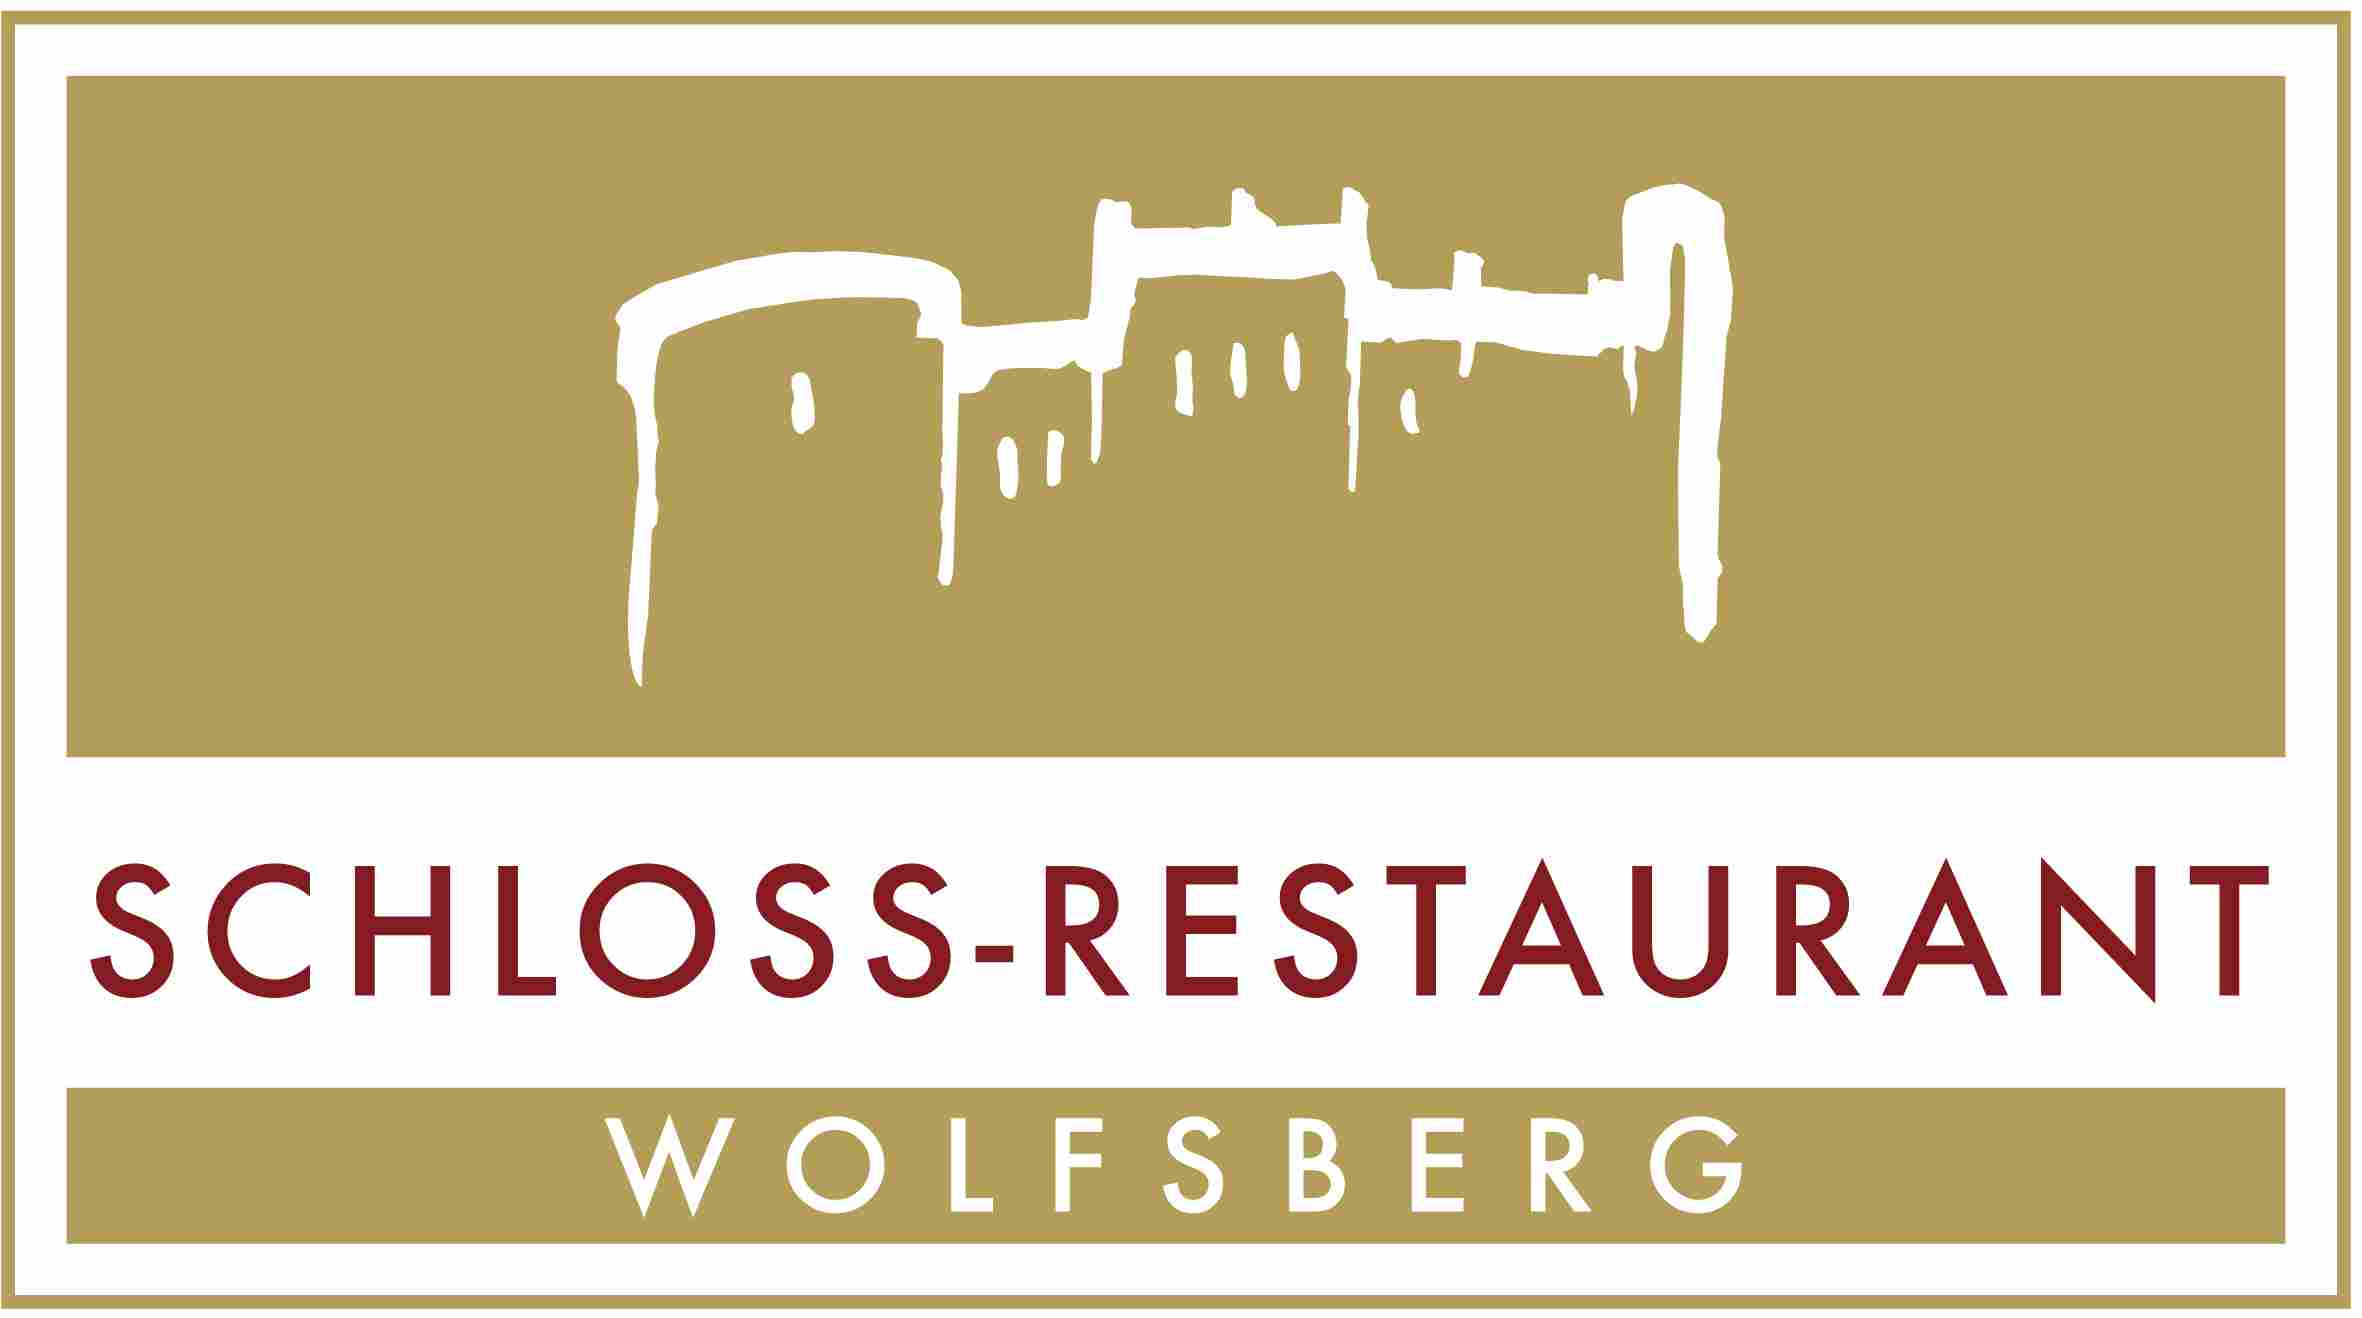 Schlossrestaurant Wolfsberg